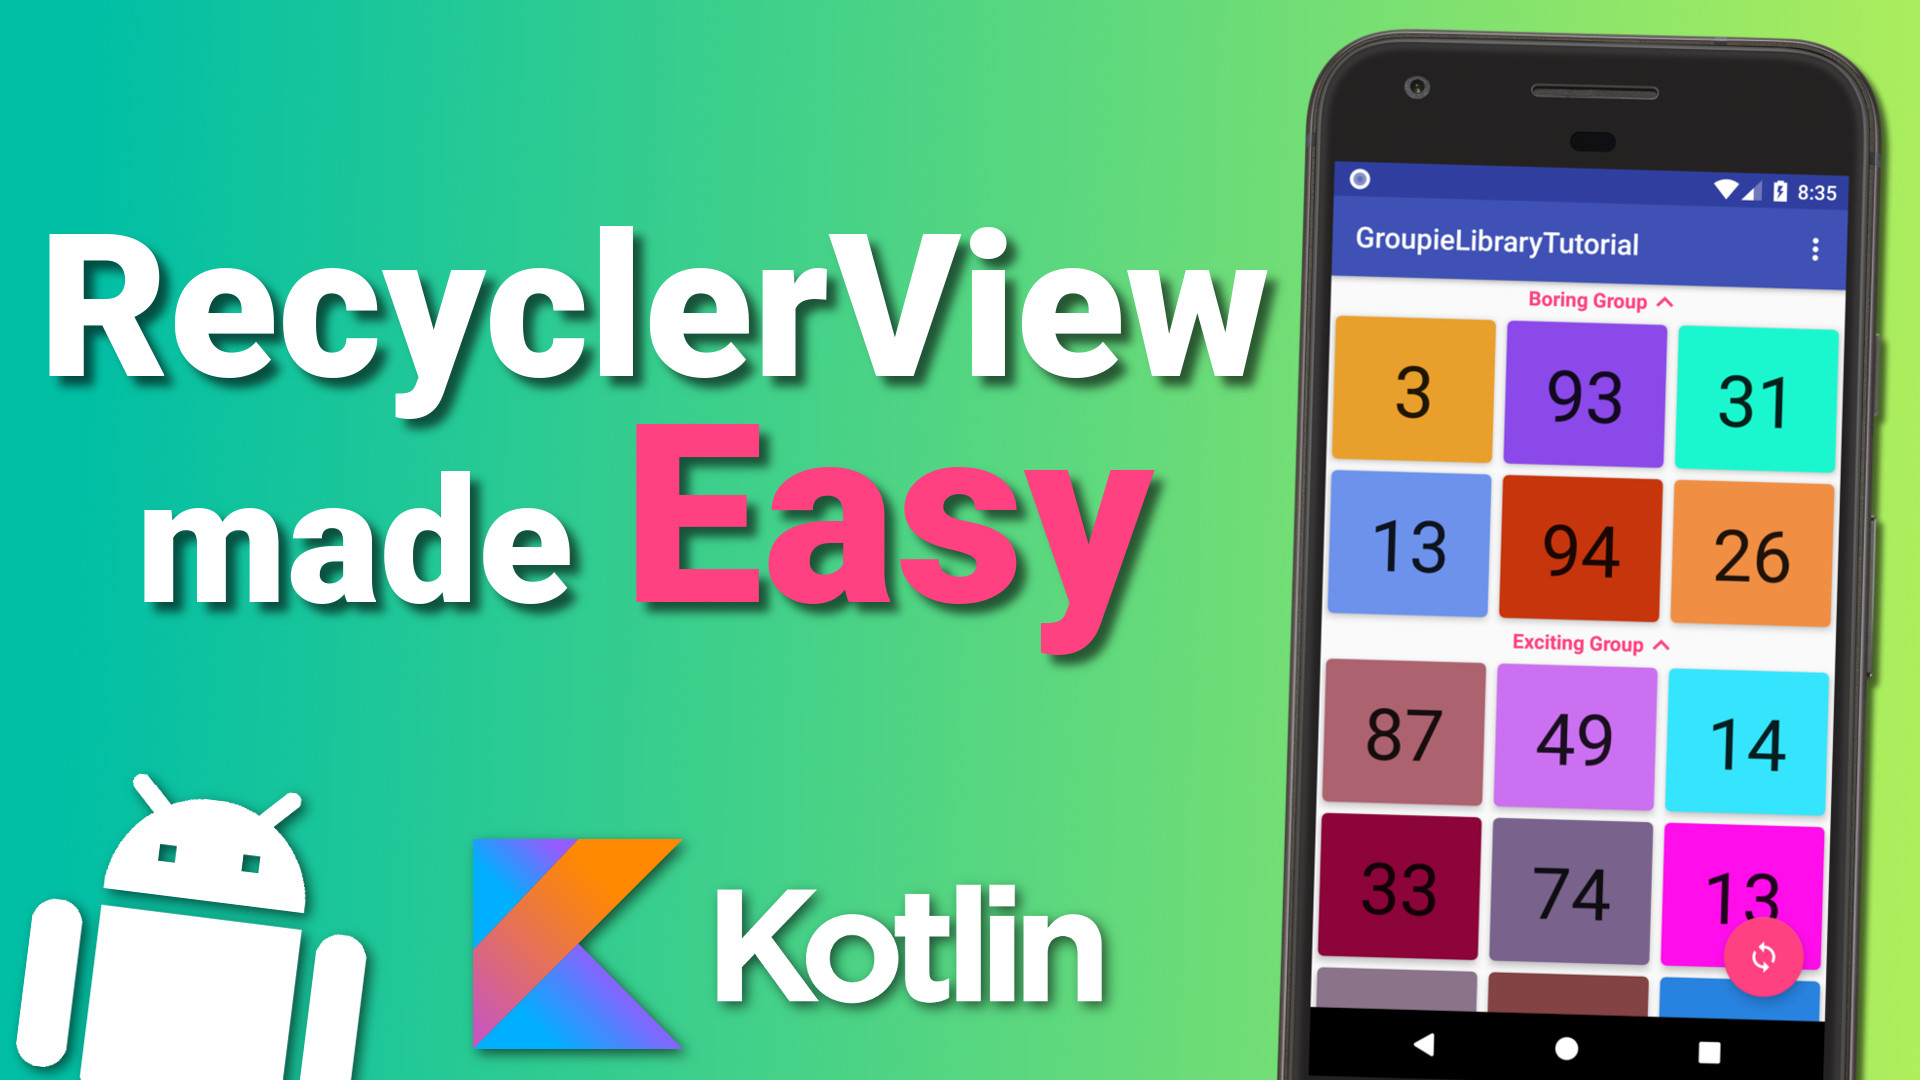 Create a Complex RecyclerView Quickly with Groupie Library – Android Kotlin RecyclerView Tutorial